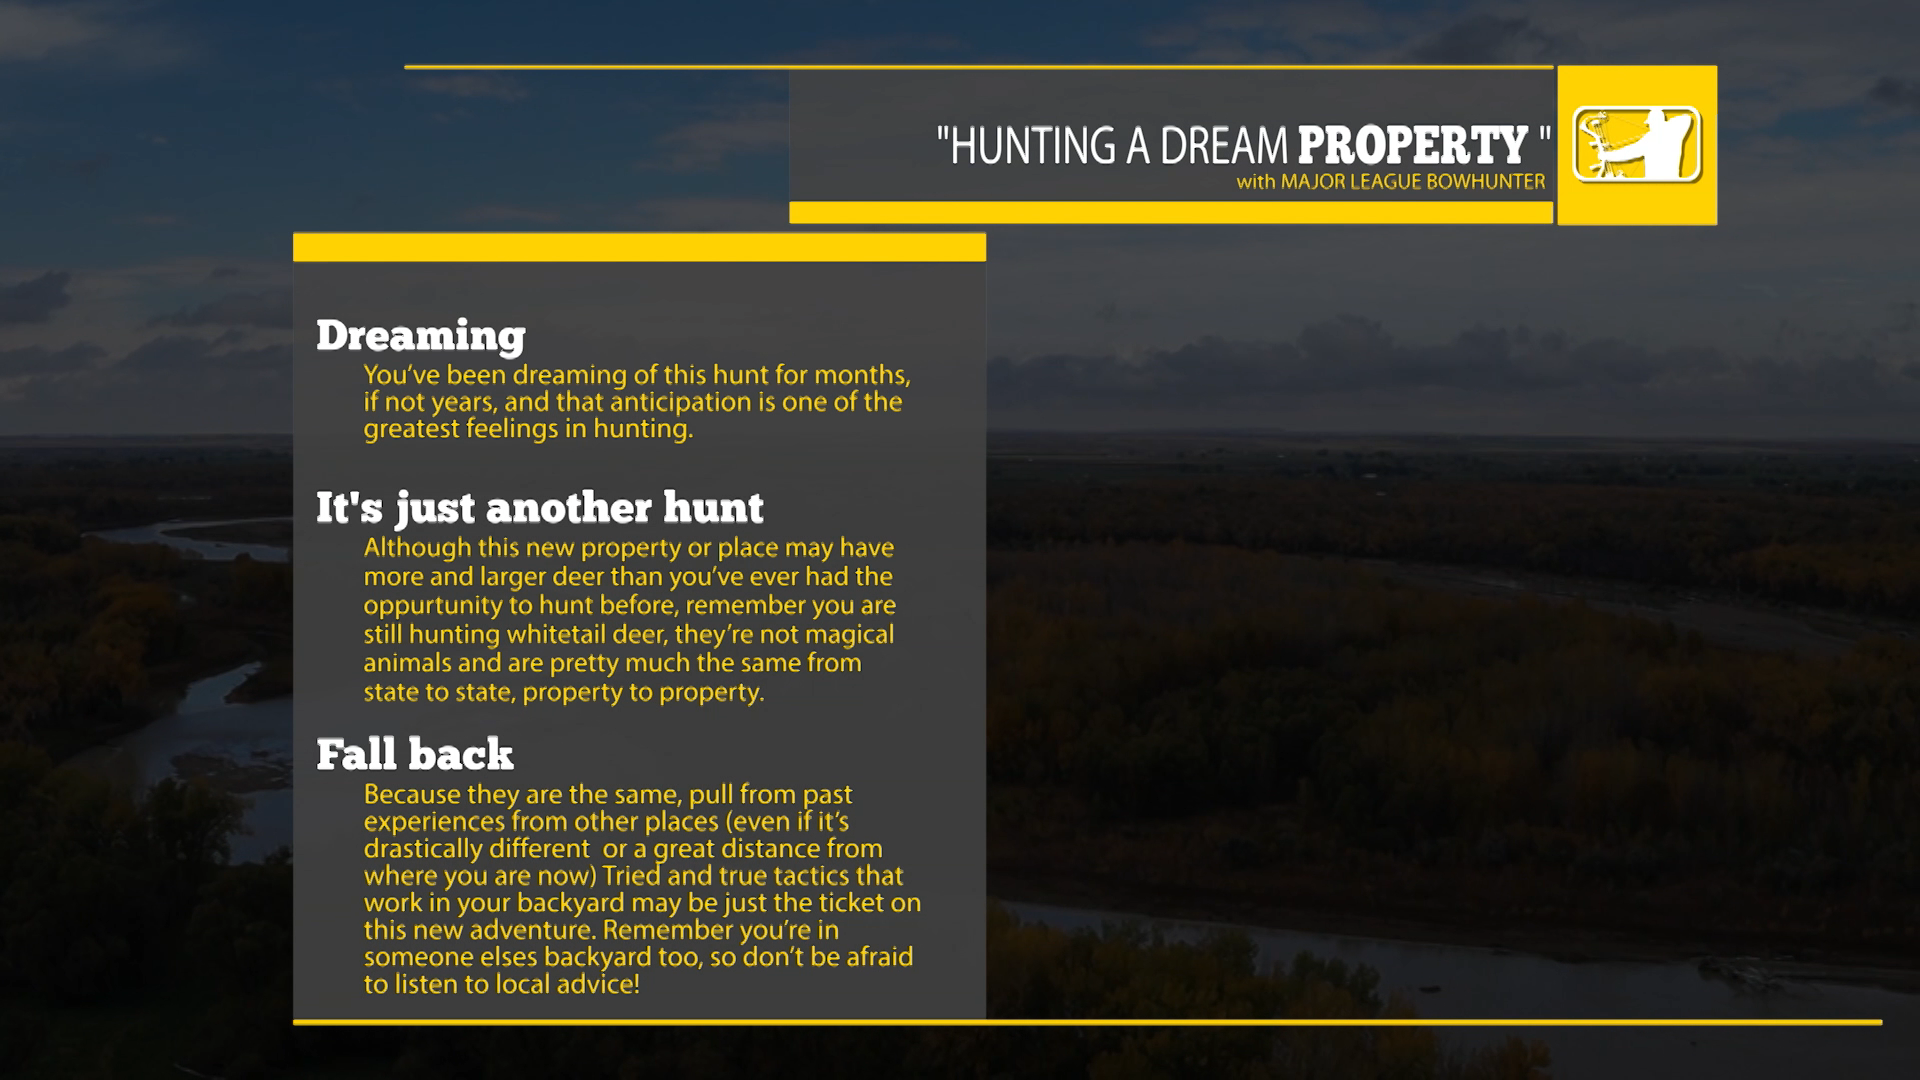 HUNTING DREAM PROPERTY